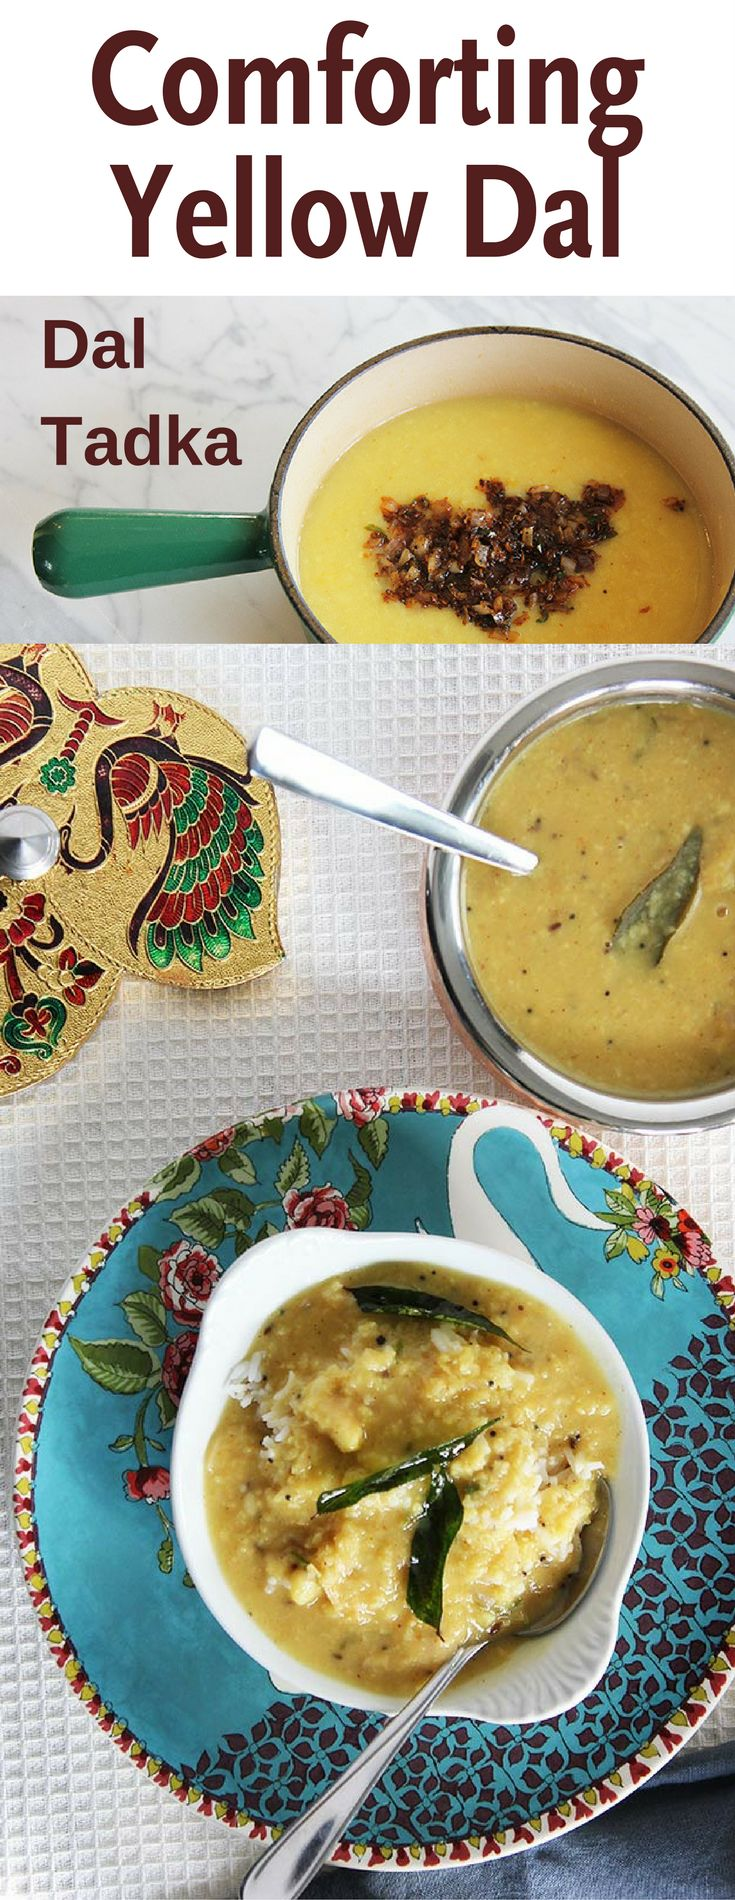 Dal Tadka is a soft-textured lentil soup, flavored with cumin seeds, black mustard seeds, ginger, turmeric, green chili, and shallots, cooked in ghee. This flavoring is the tadka part of Dal Tadka. Tadka is a Hindi word that translates as tempering.